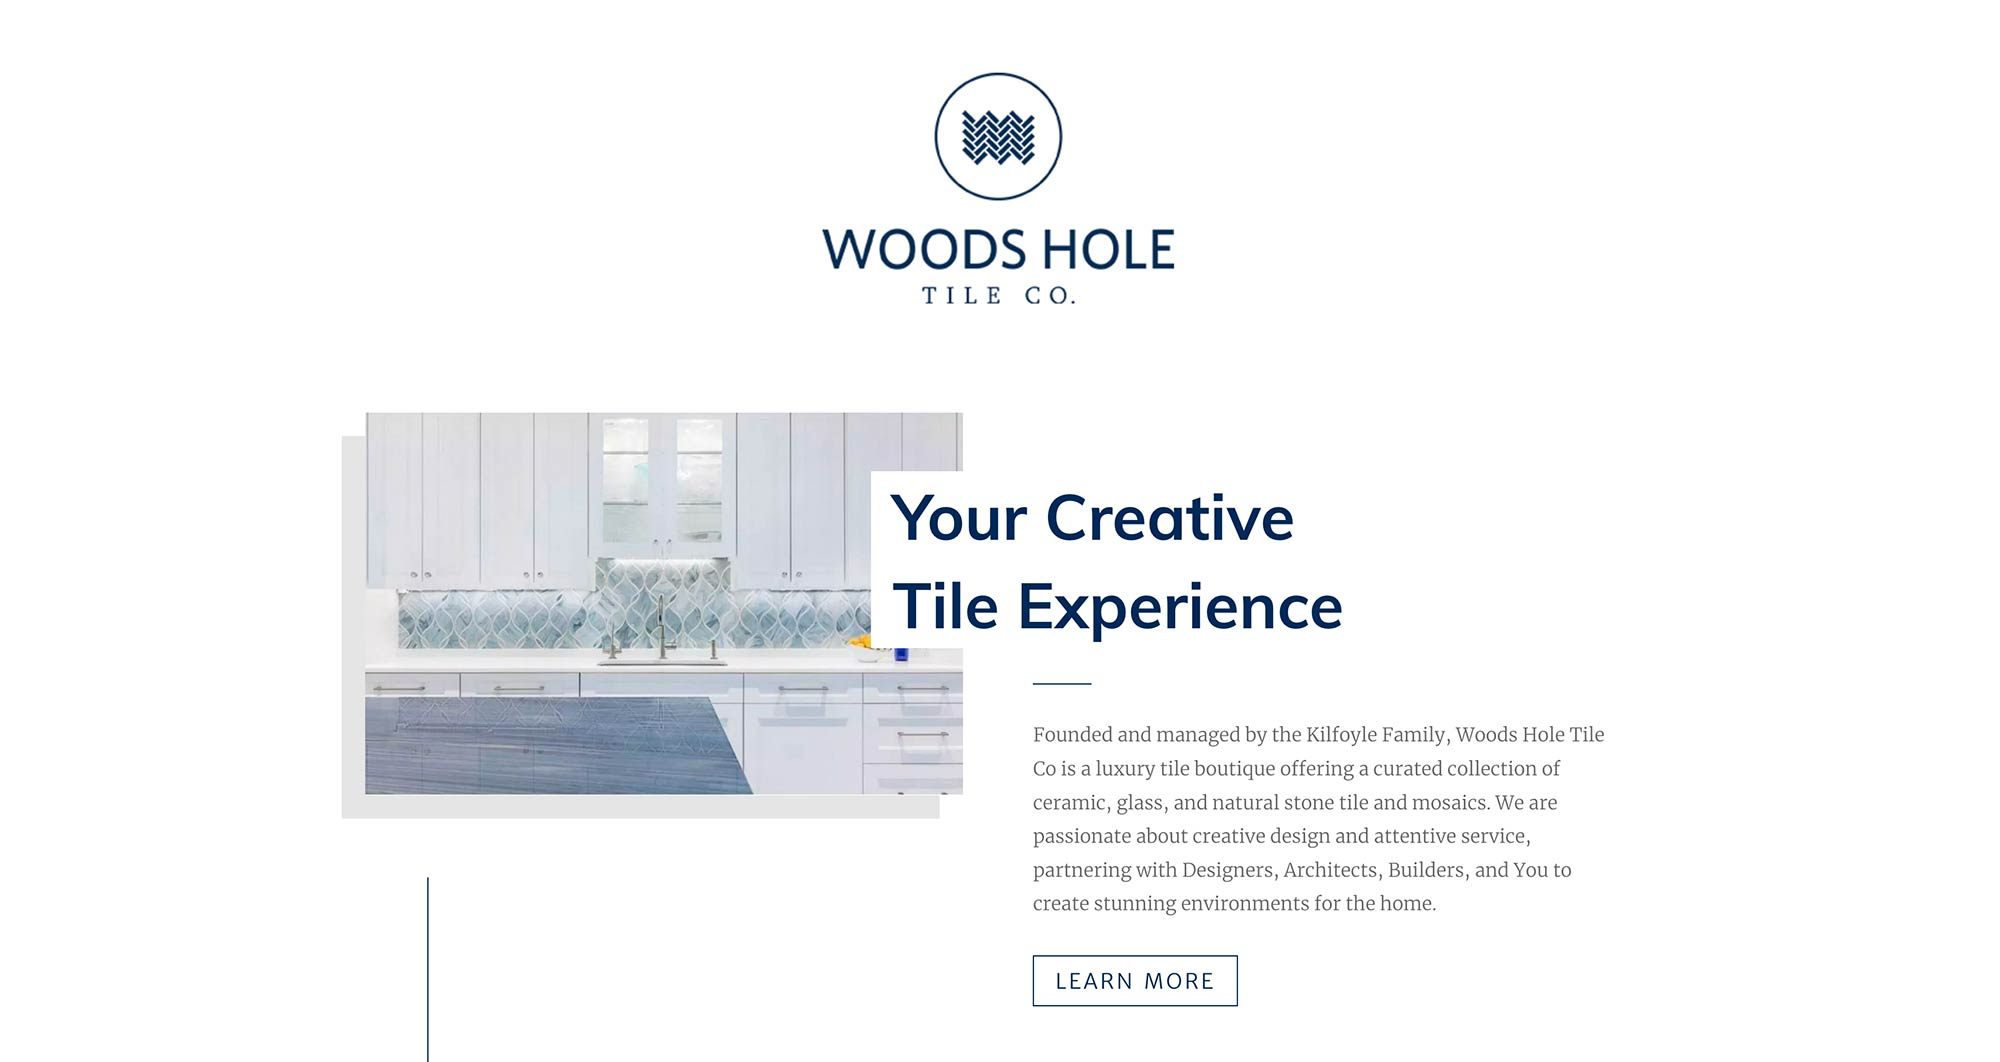 Woods Hole Tile Company